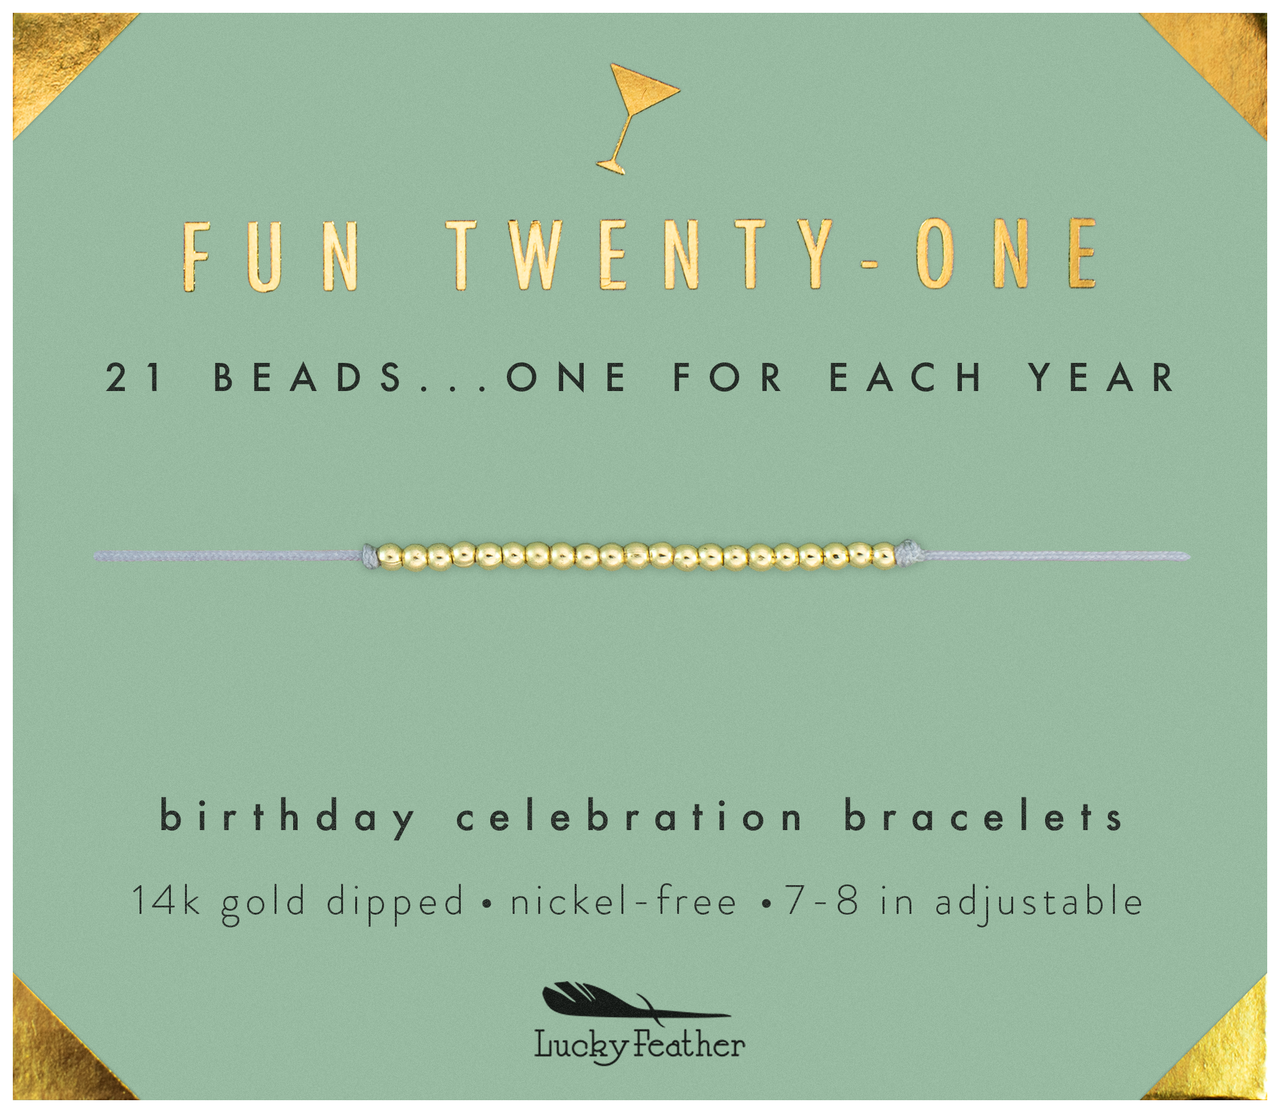 Milestone Birthday Bracelet - GOLD - Twenty-One